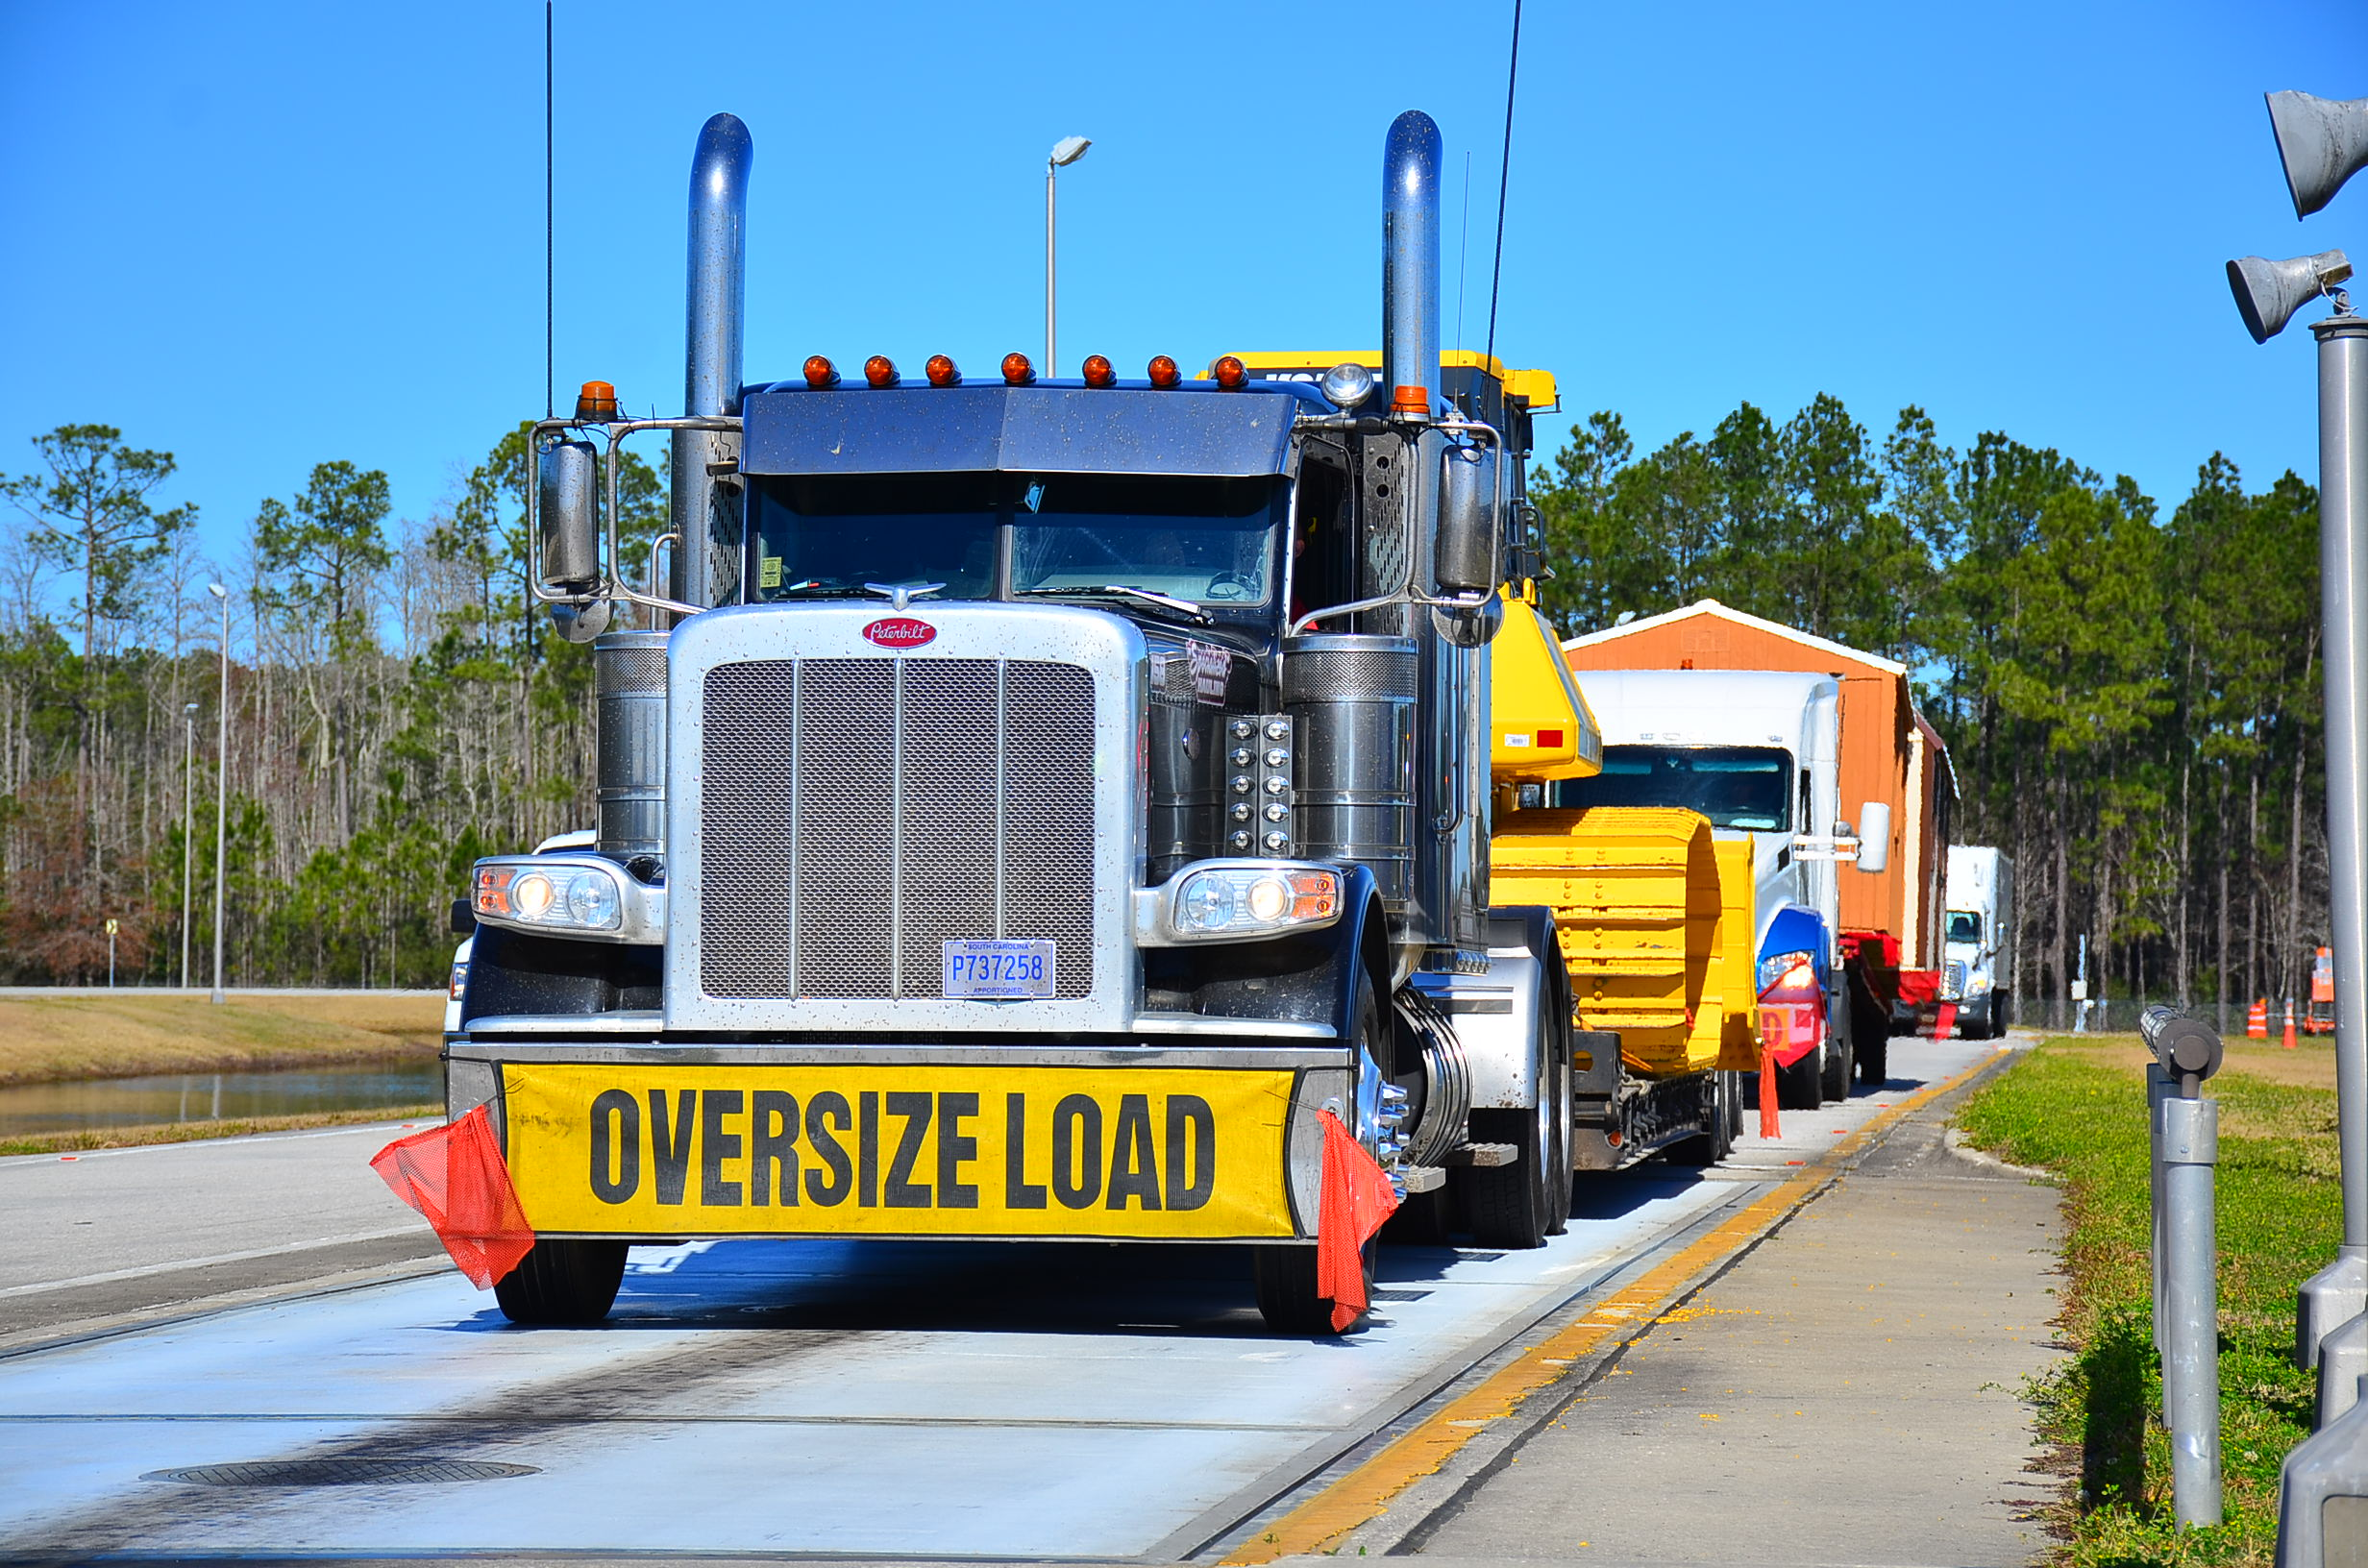 Picture of an Oversized Load